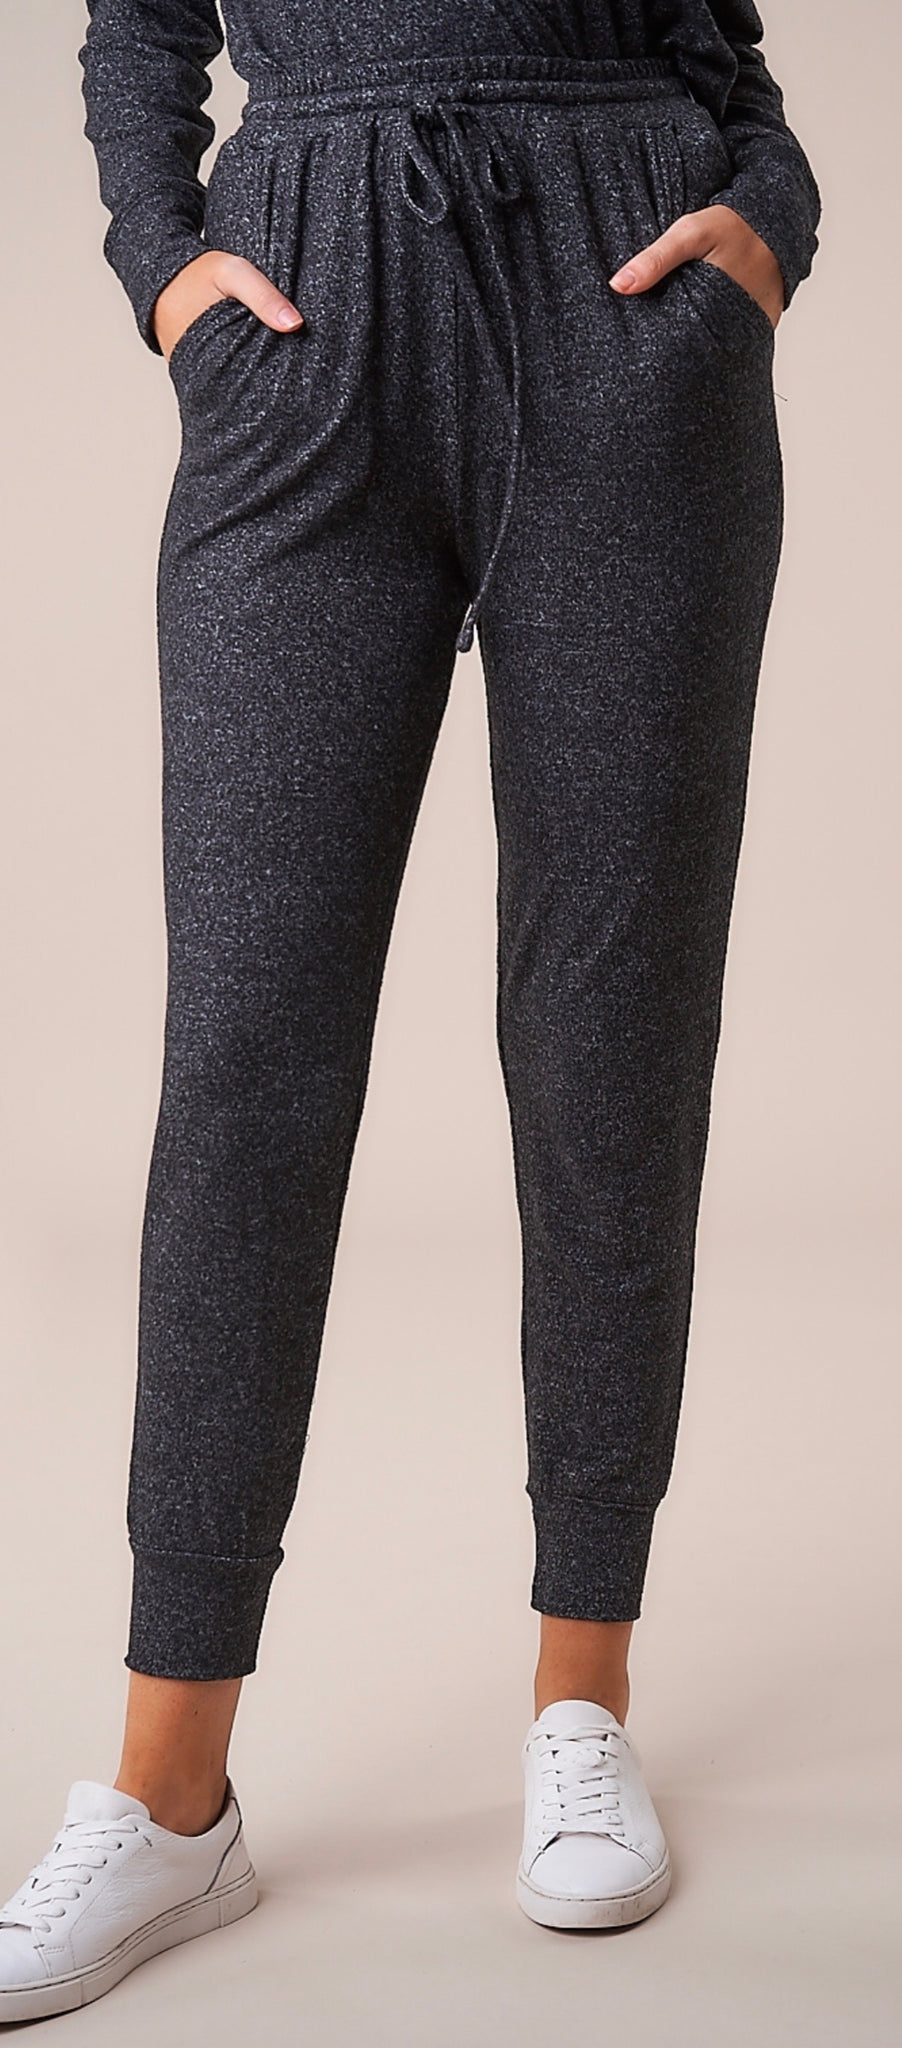 Layover Knit Joggers